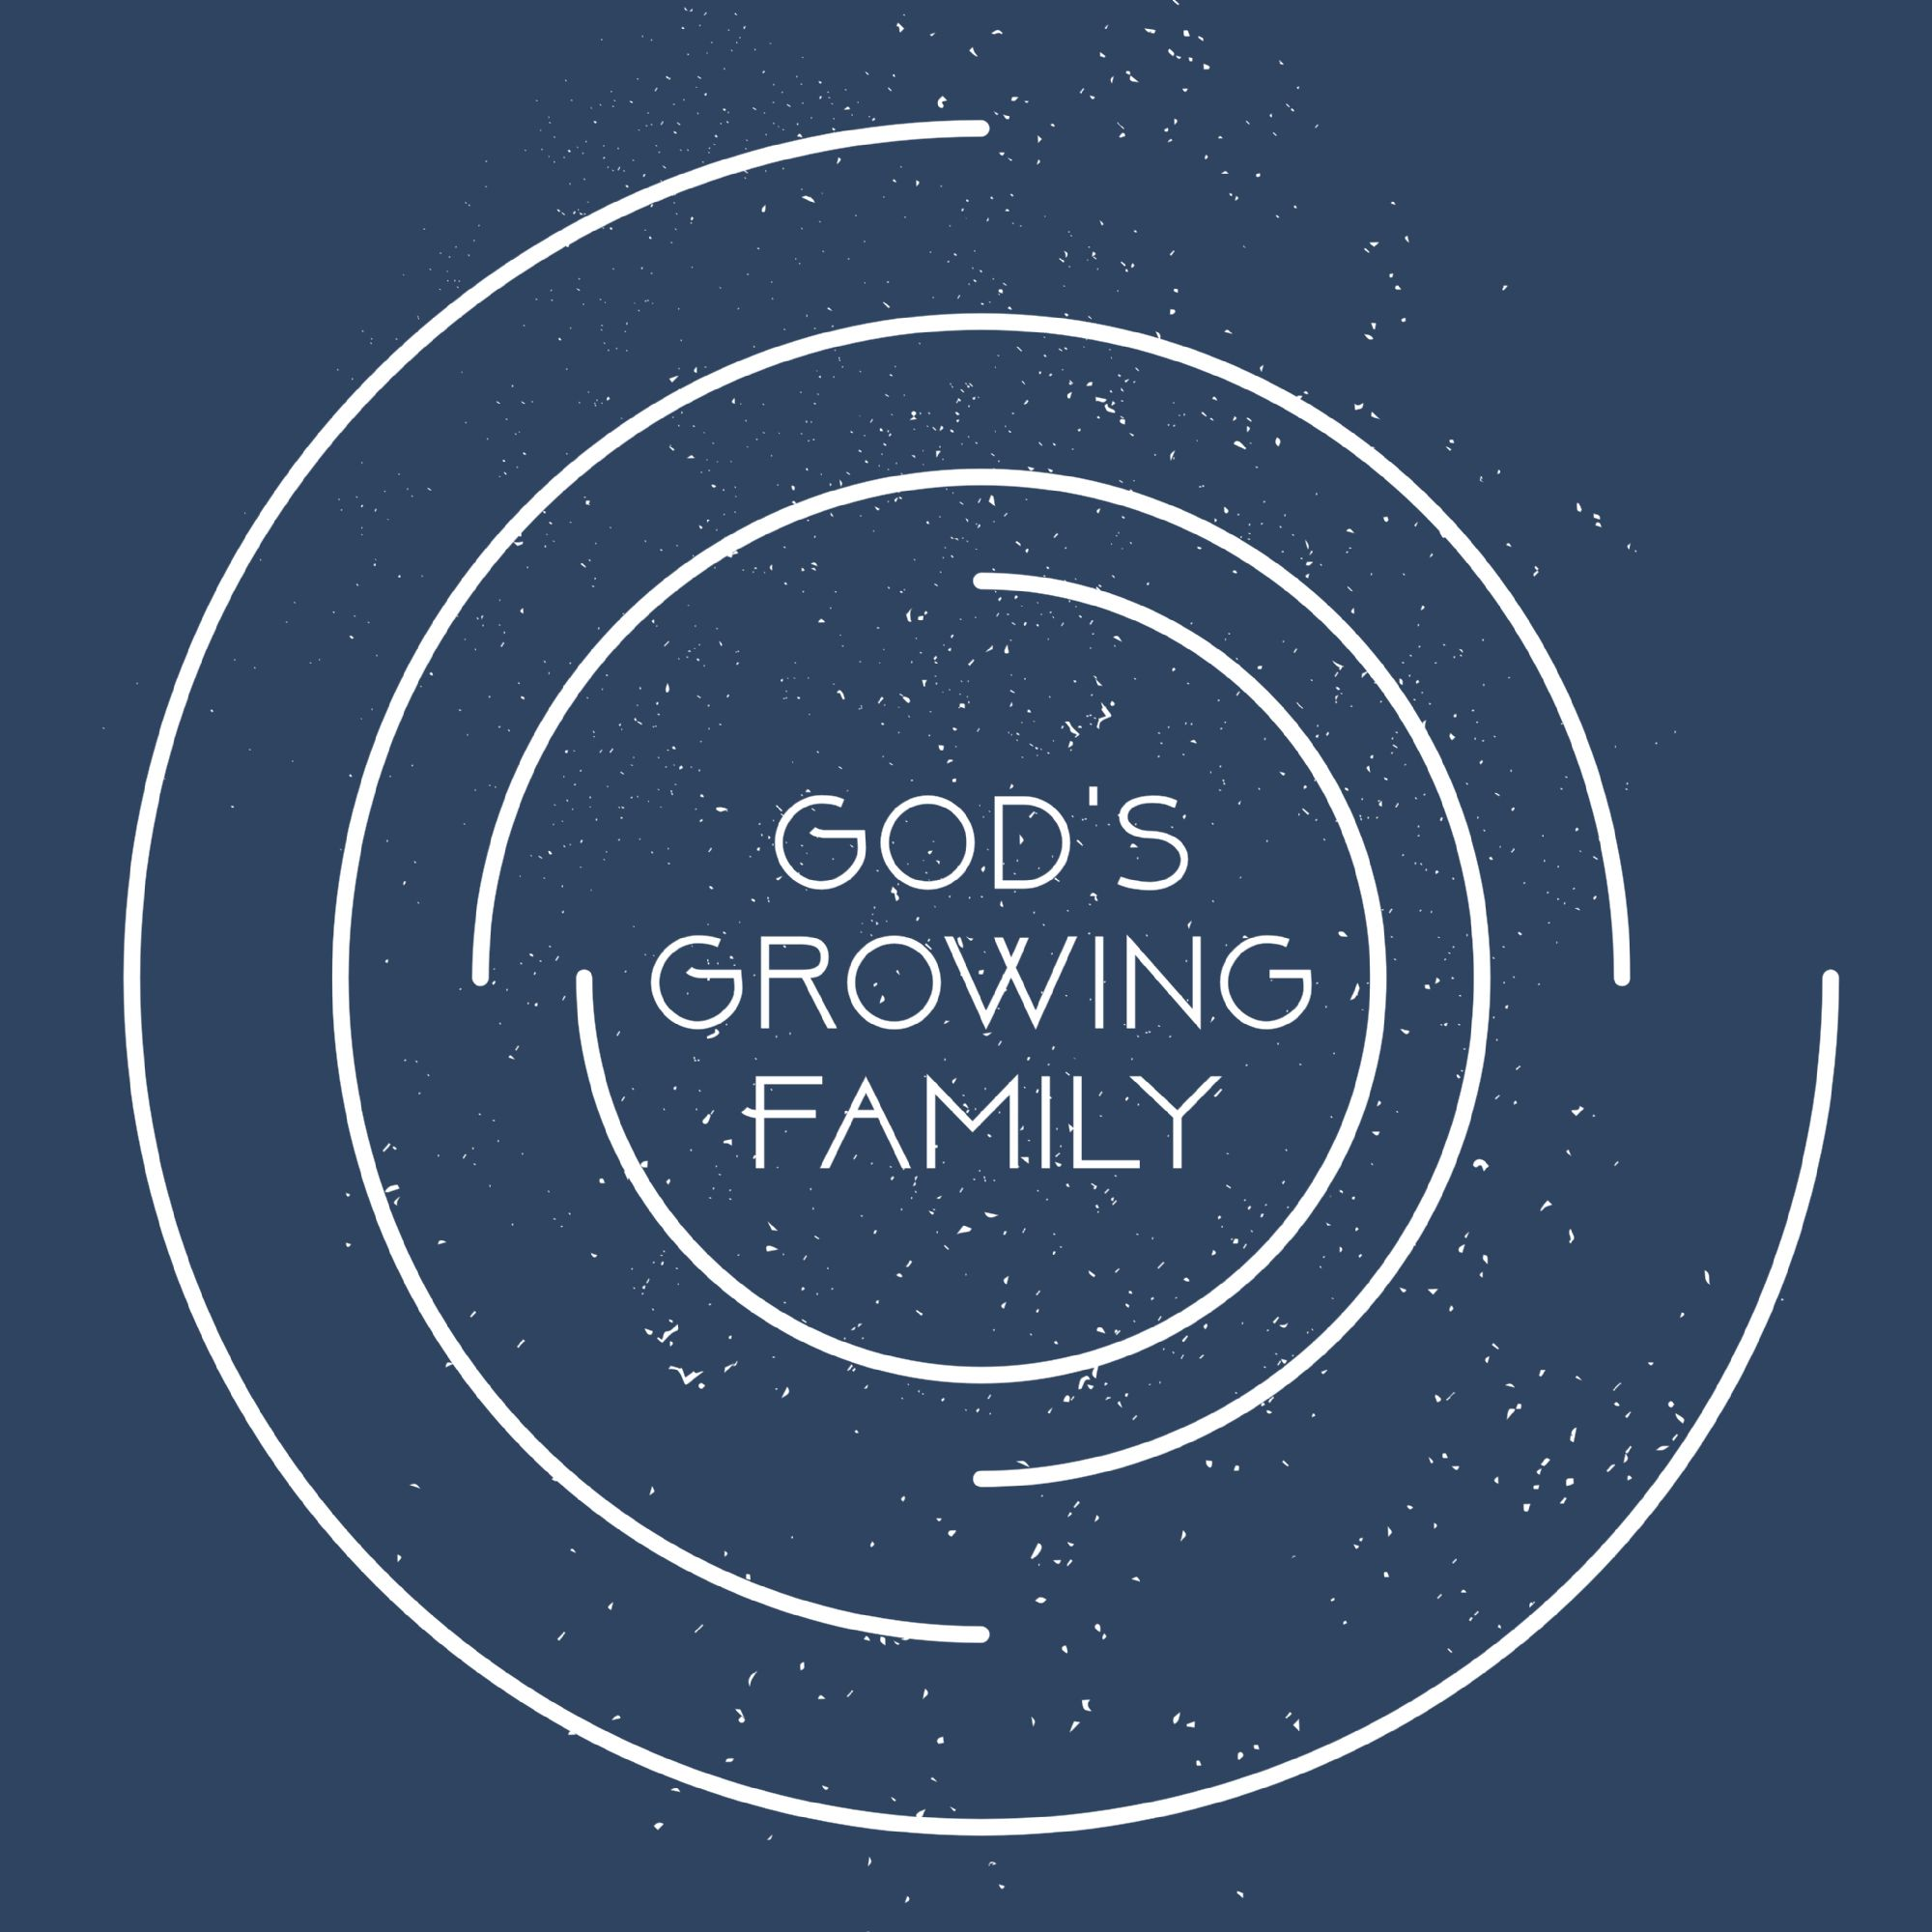 God's Growing Family